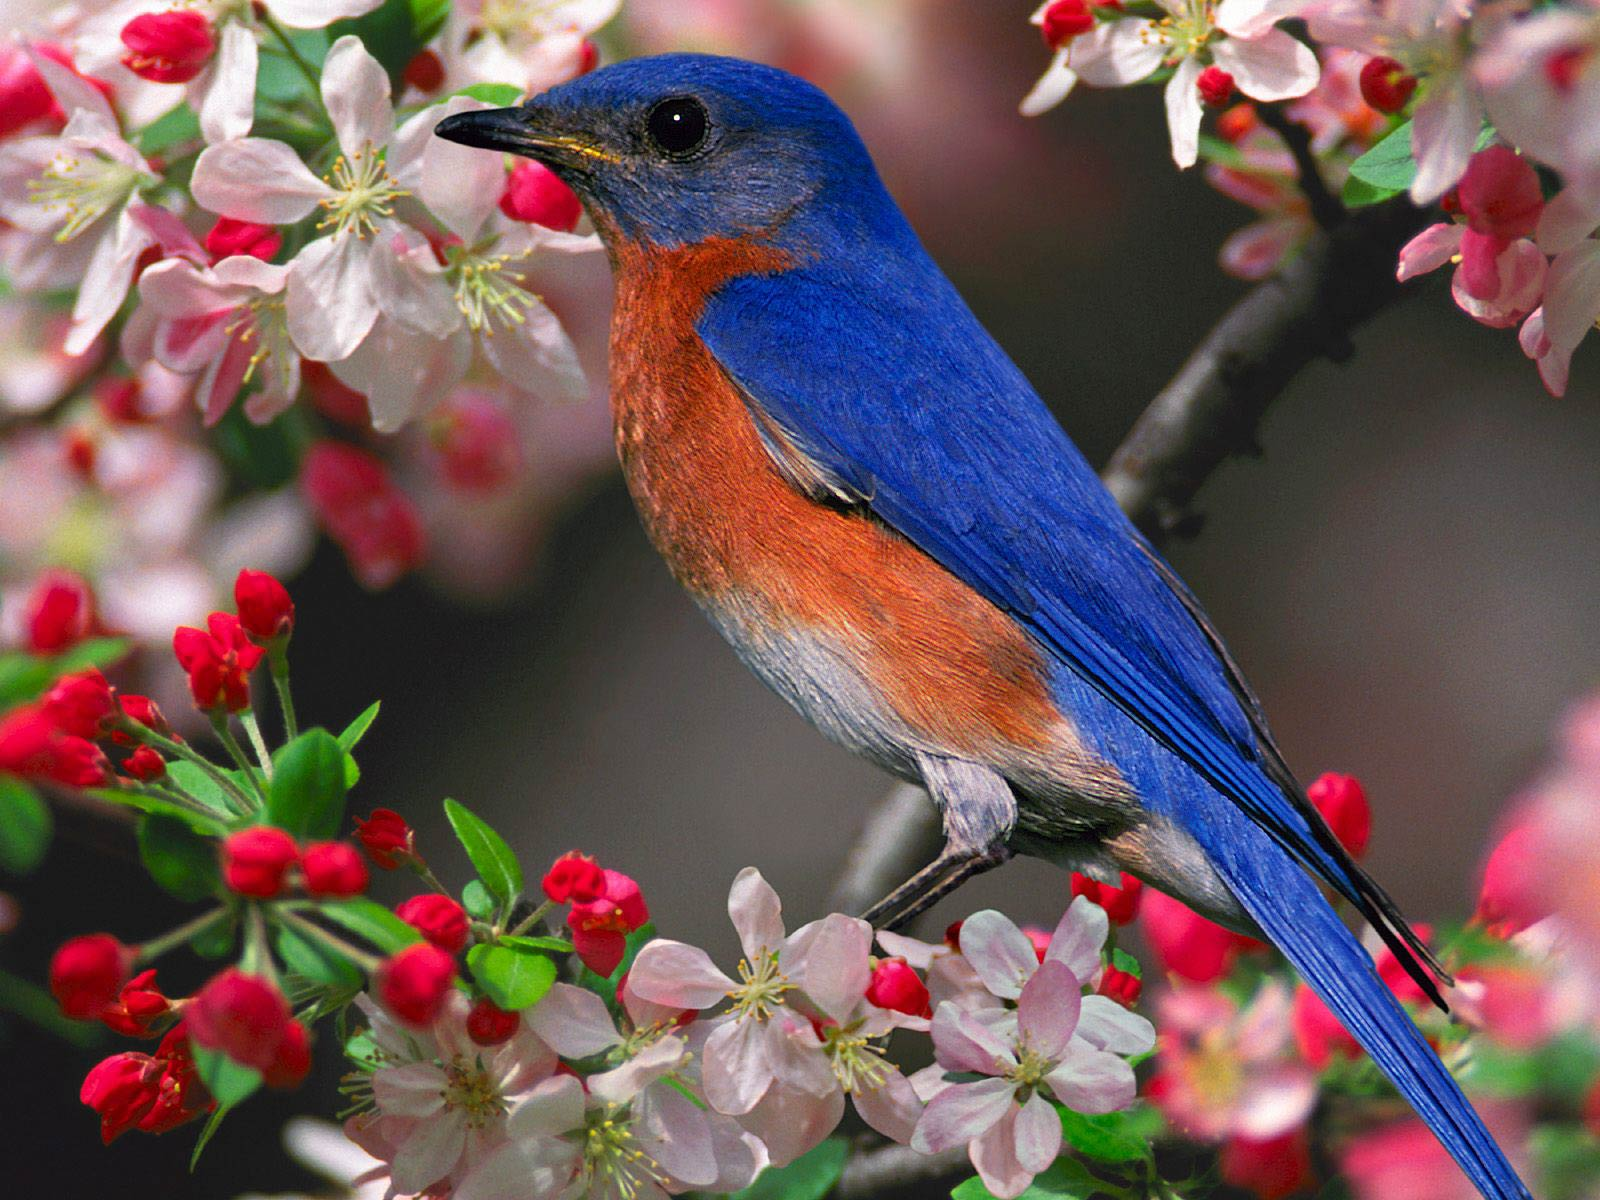 Free Bluebird Wallpaper For Desktop: Bluebird Wallpaper And Background